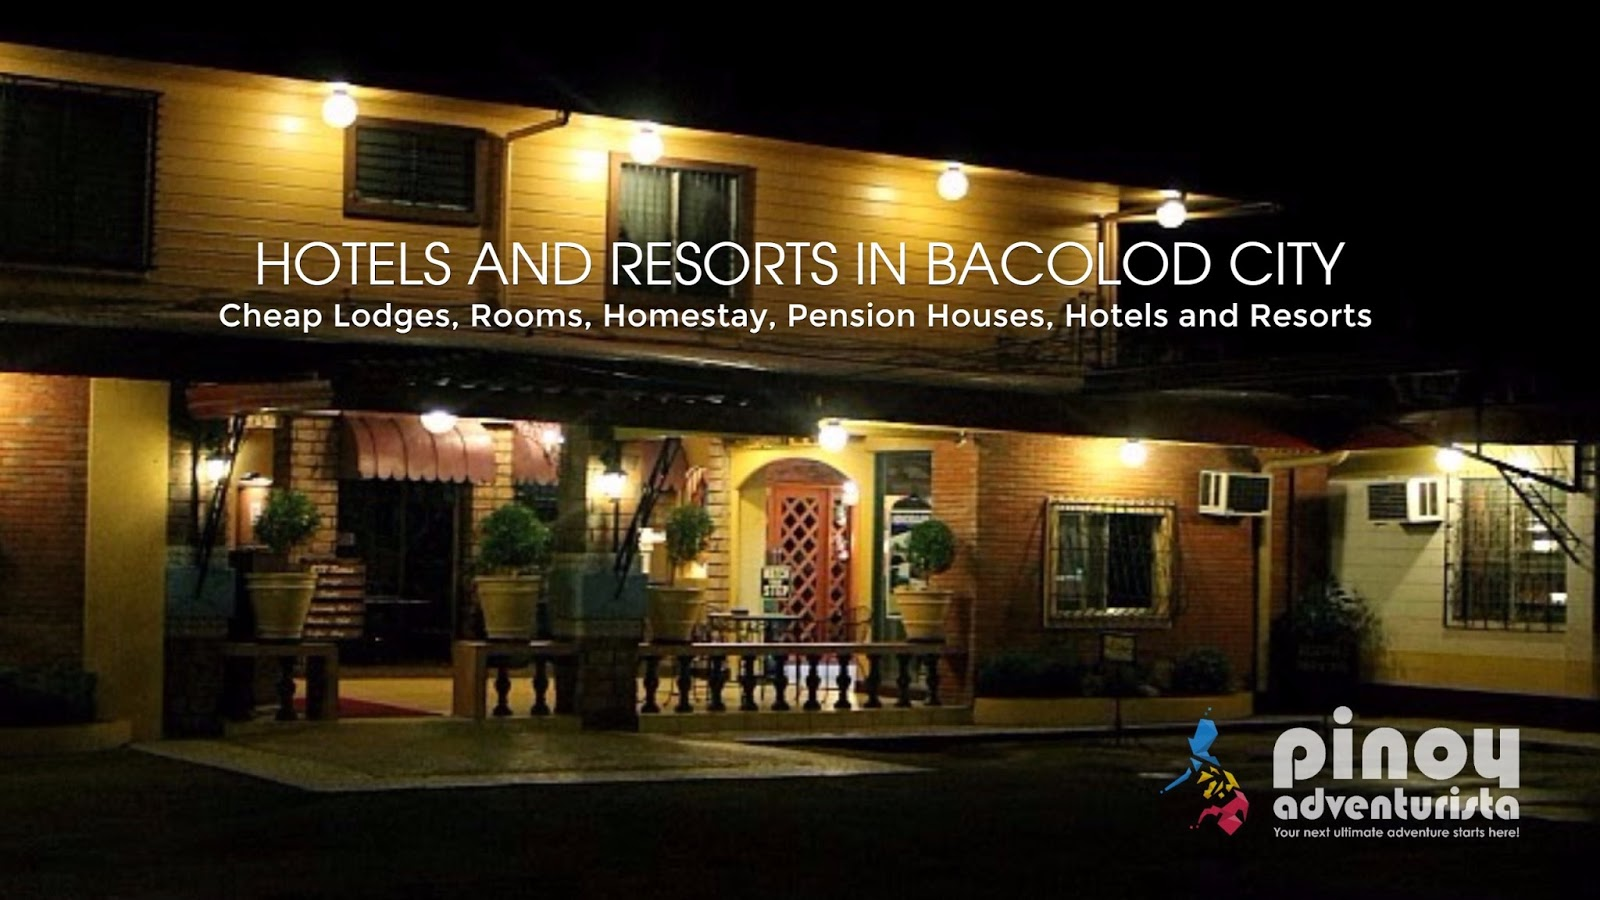 Bacolod City Resorts And Hotels Lodges Inns Hostels Rooms Tansient Pension Houses